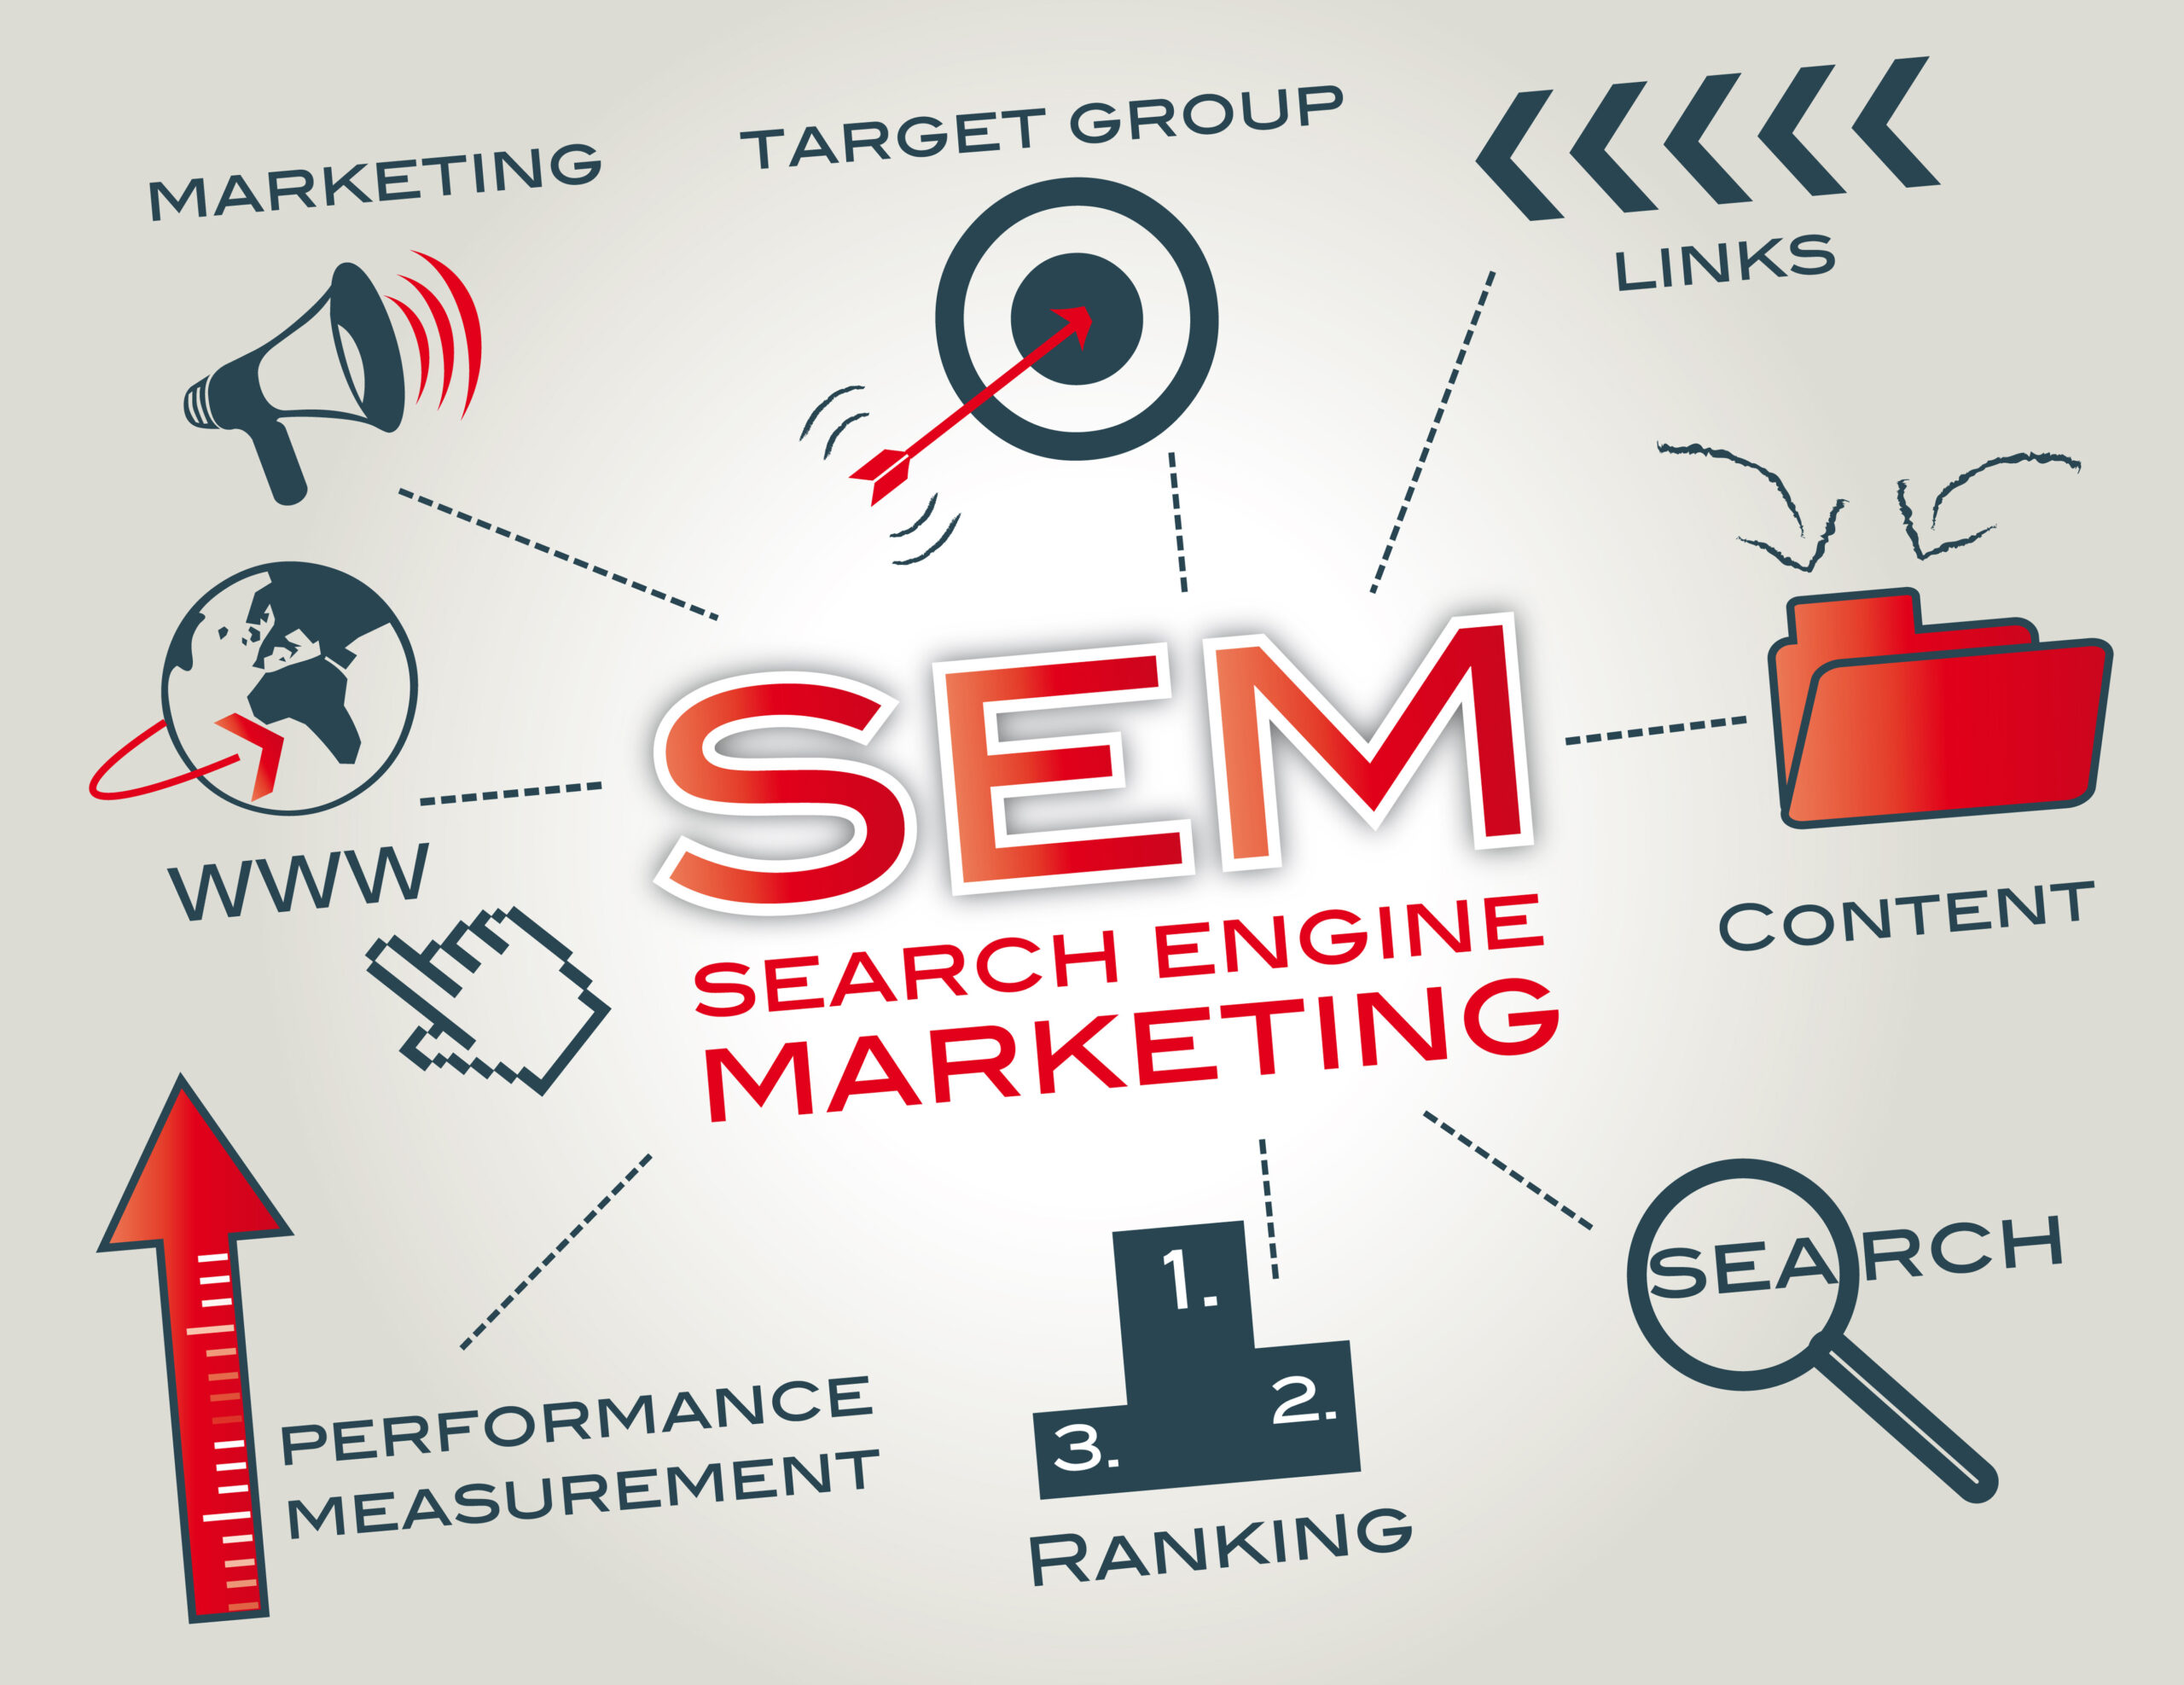 Achieve The Masses With Search Engine Marketing